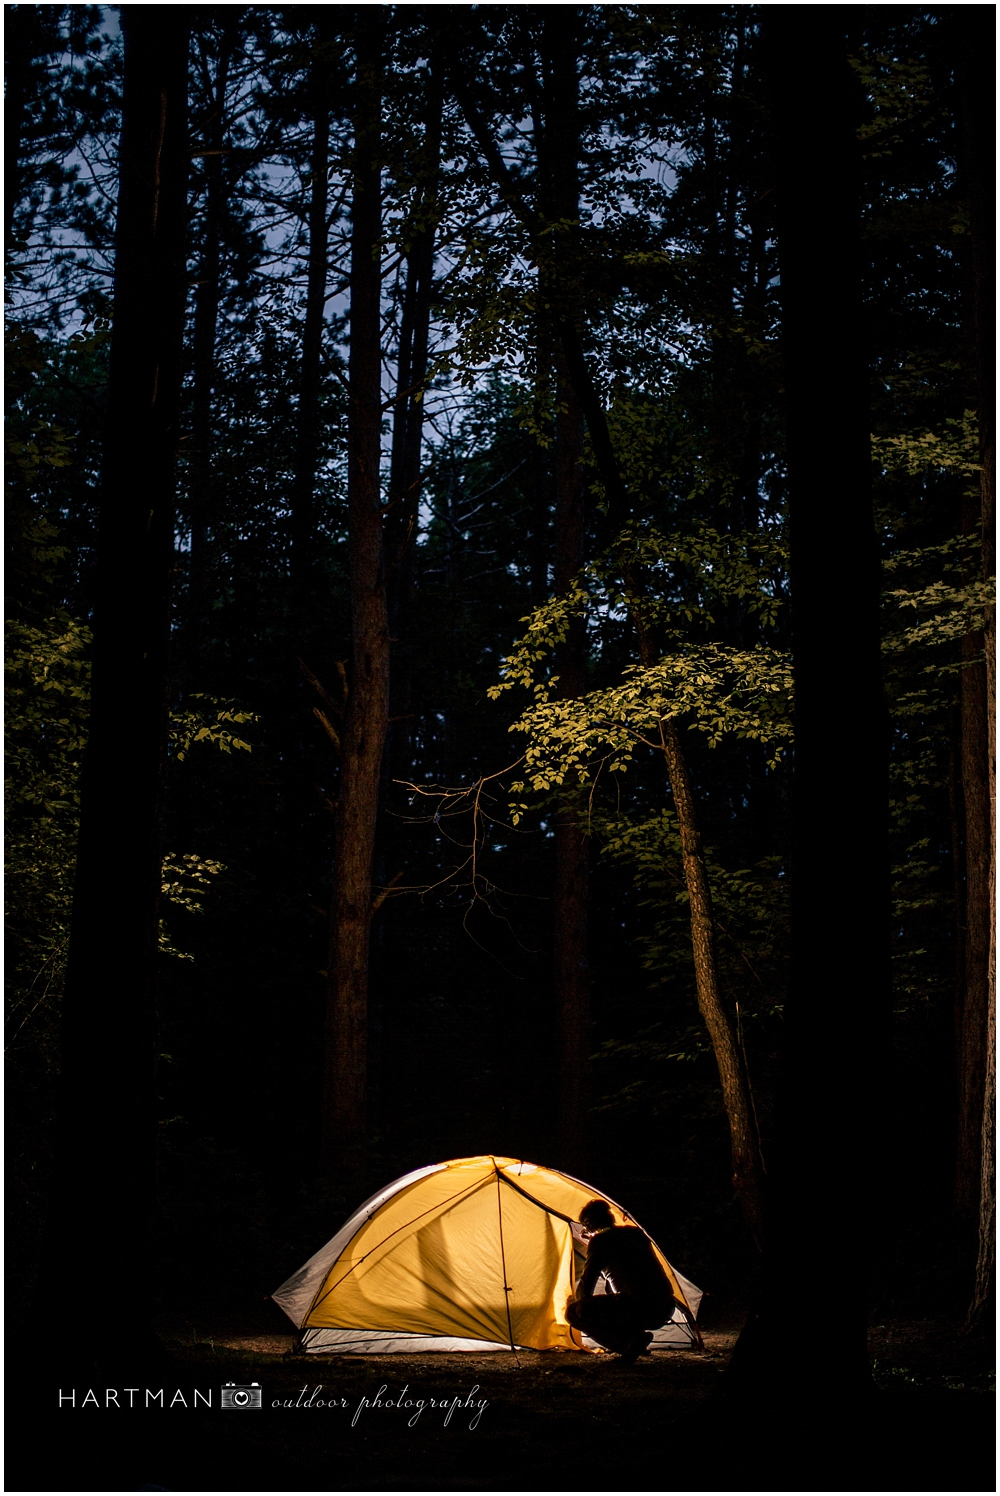 Glowing tent camping photo